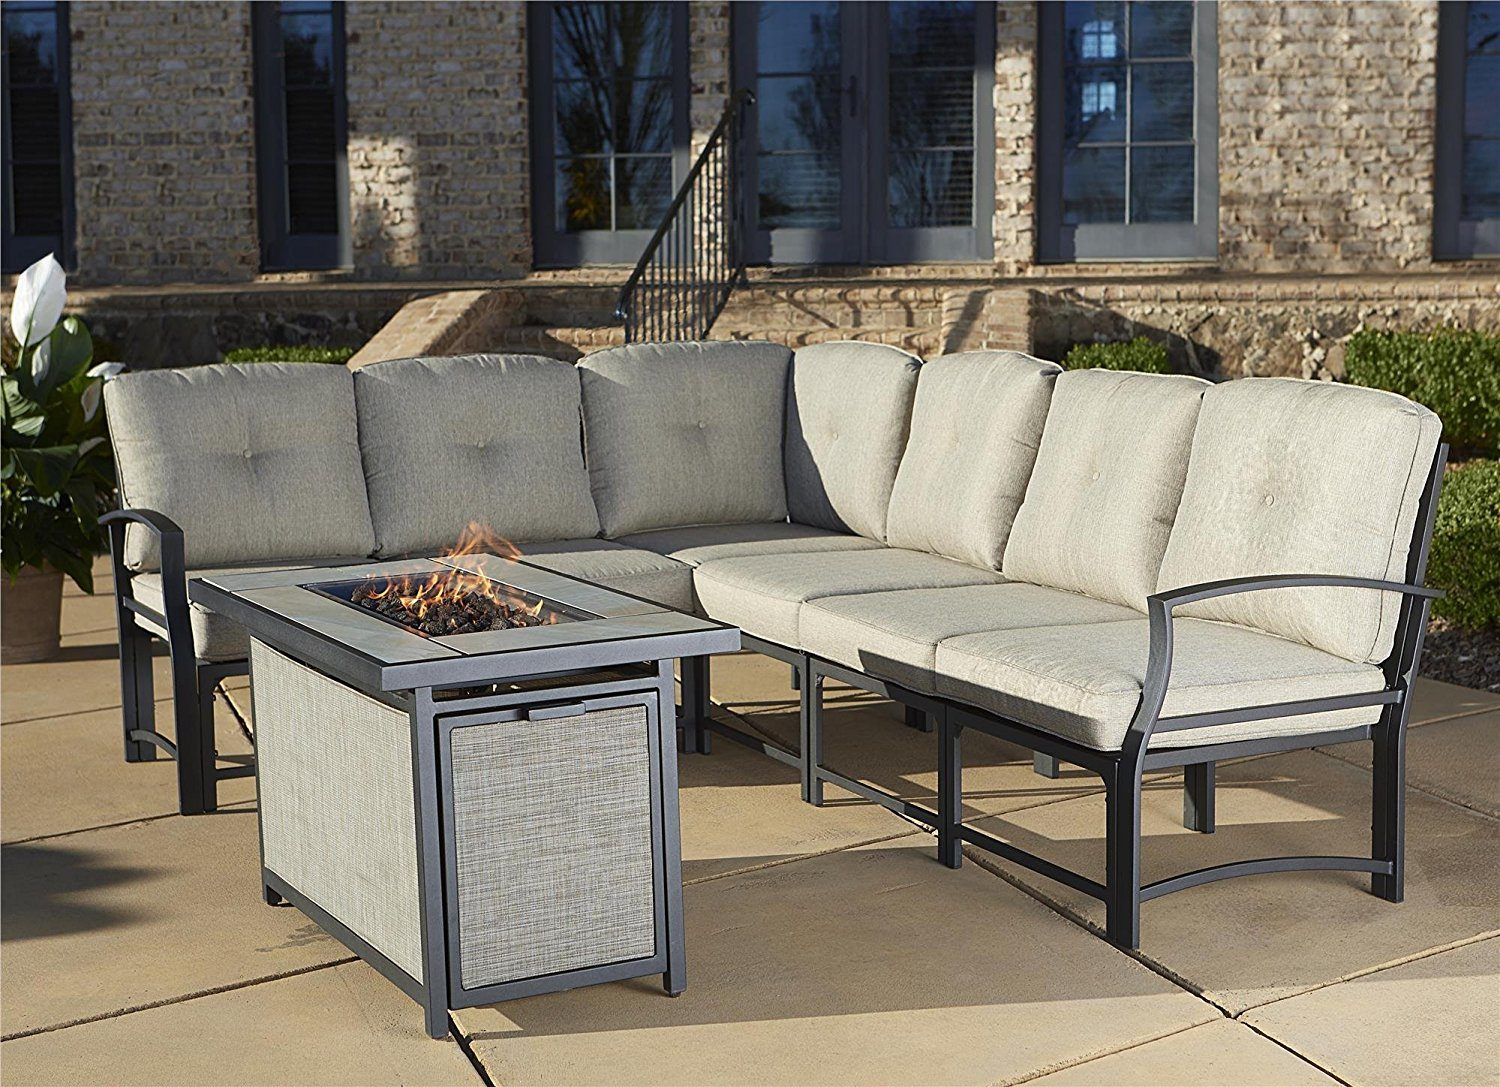 Cosco Outdoor Serene Ridge Aluminum Gas Fire Pit Table